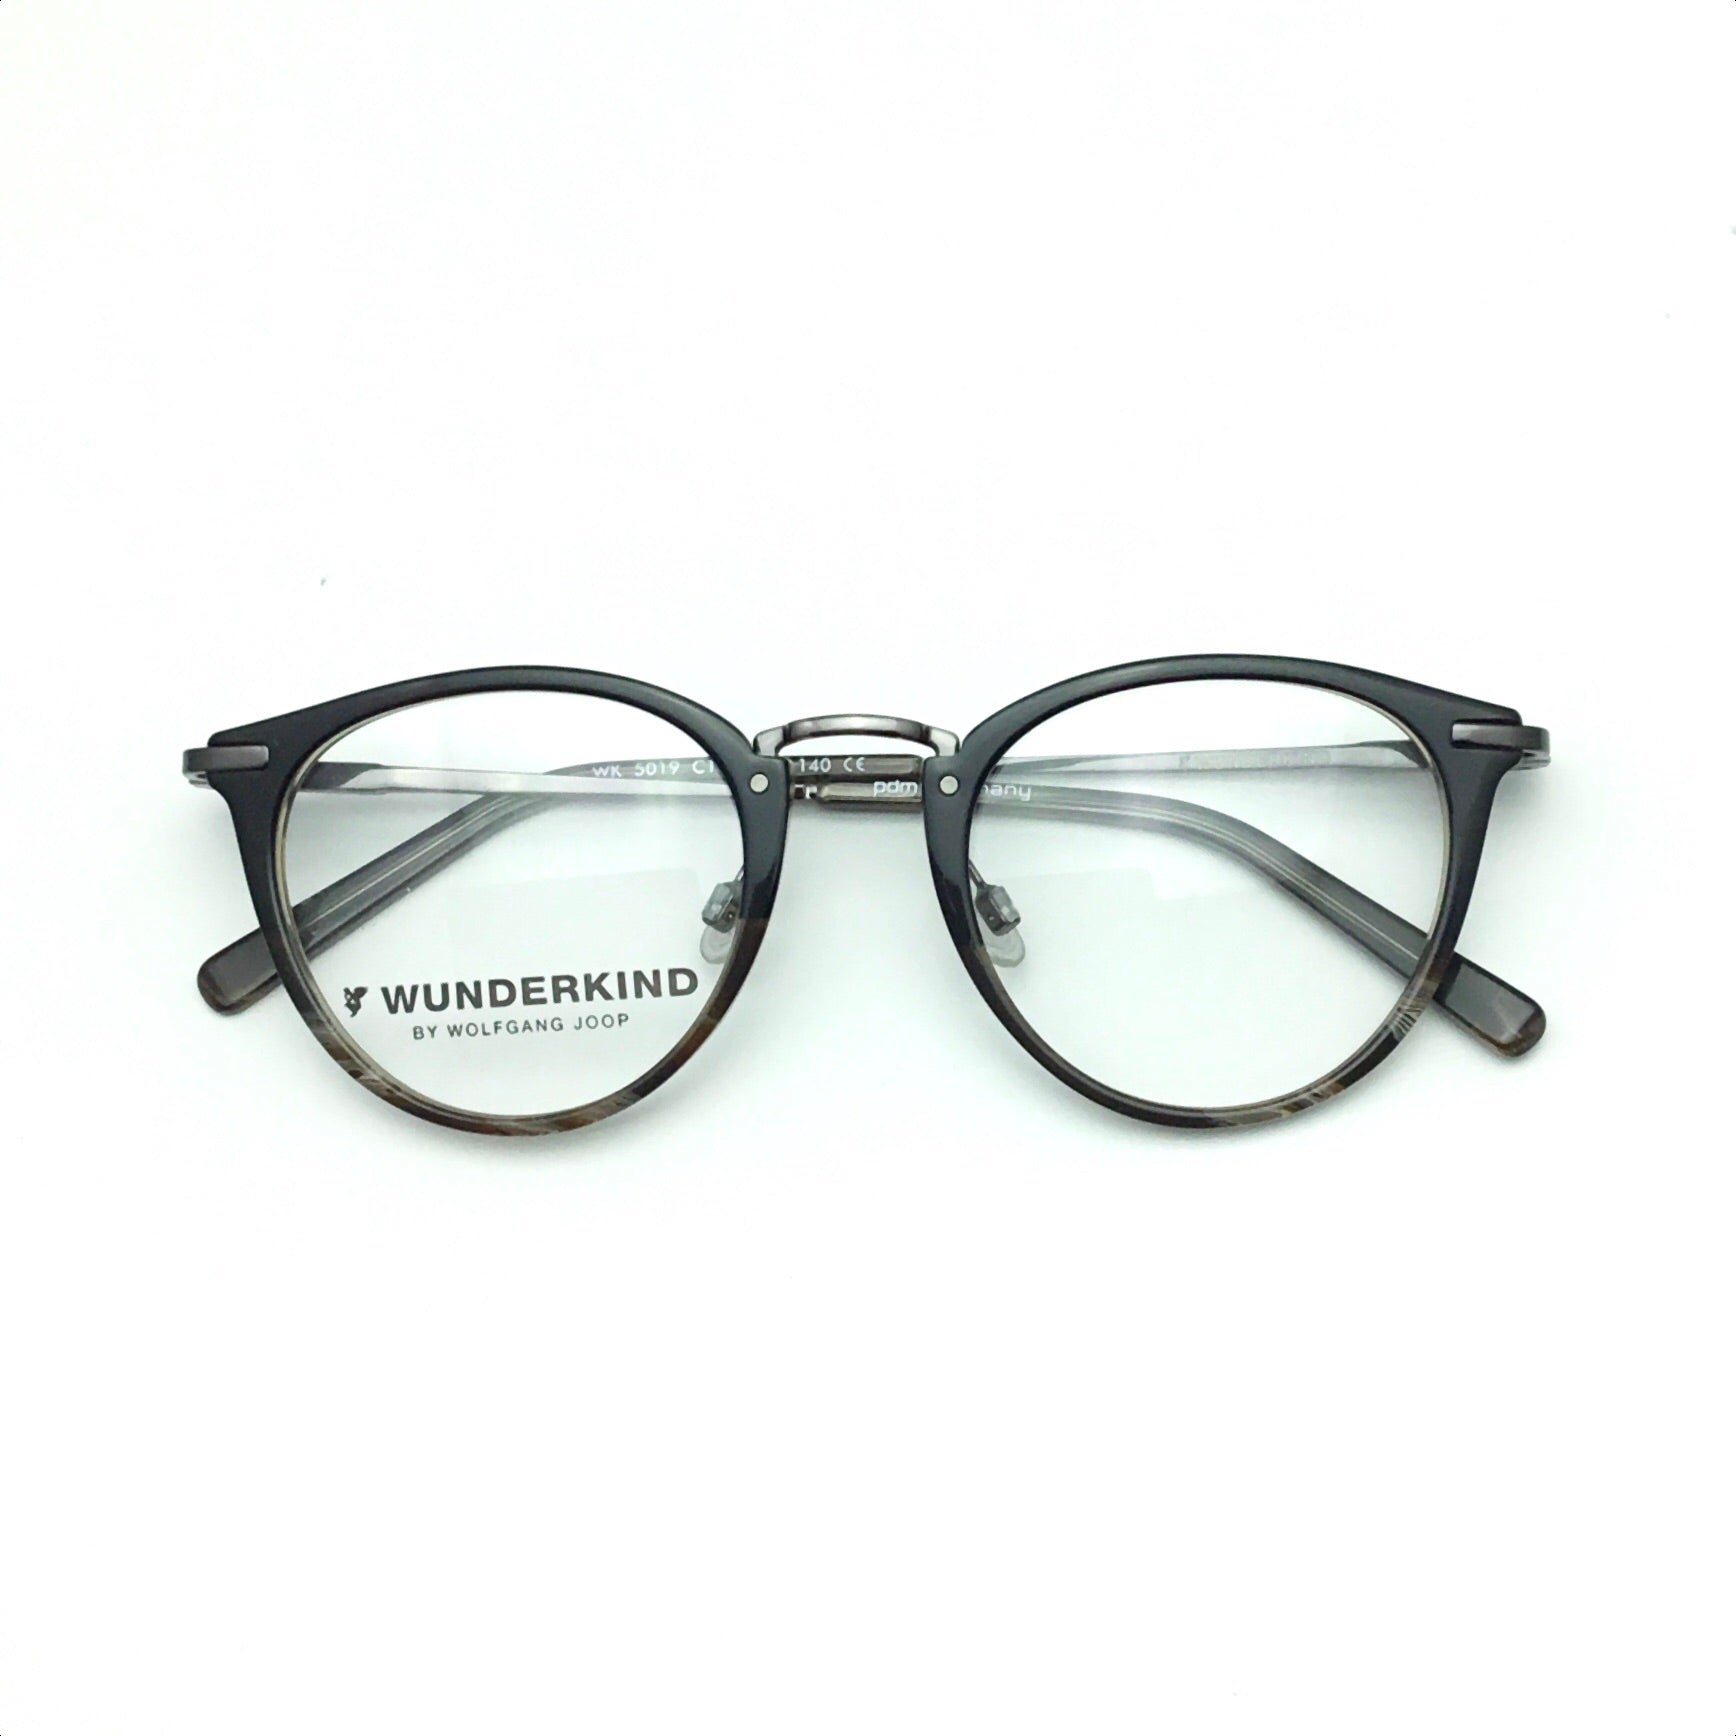 Wunder Kind Glasses $279 GERMANY O8